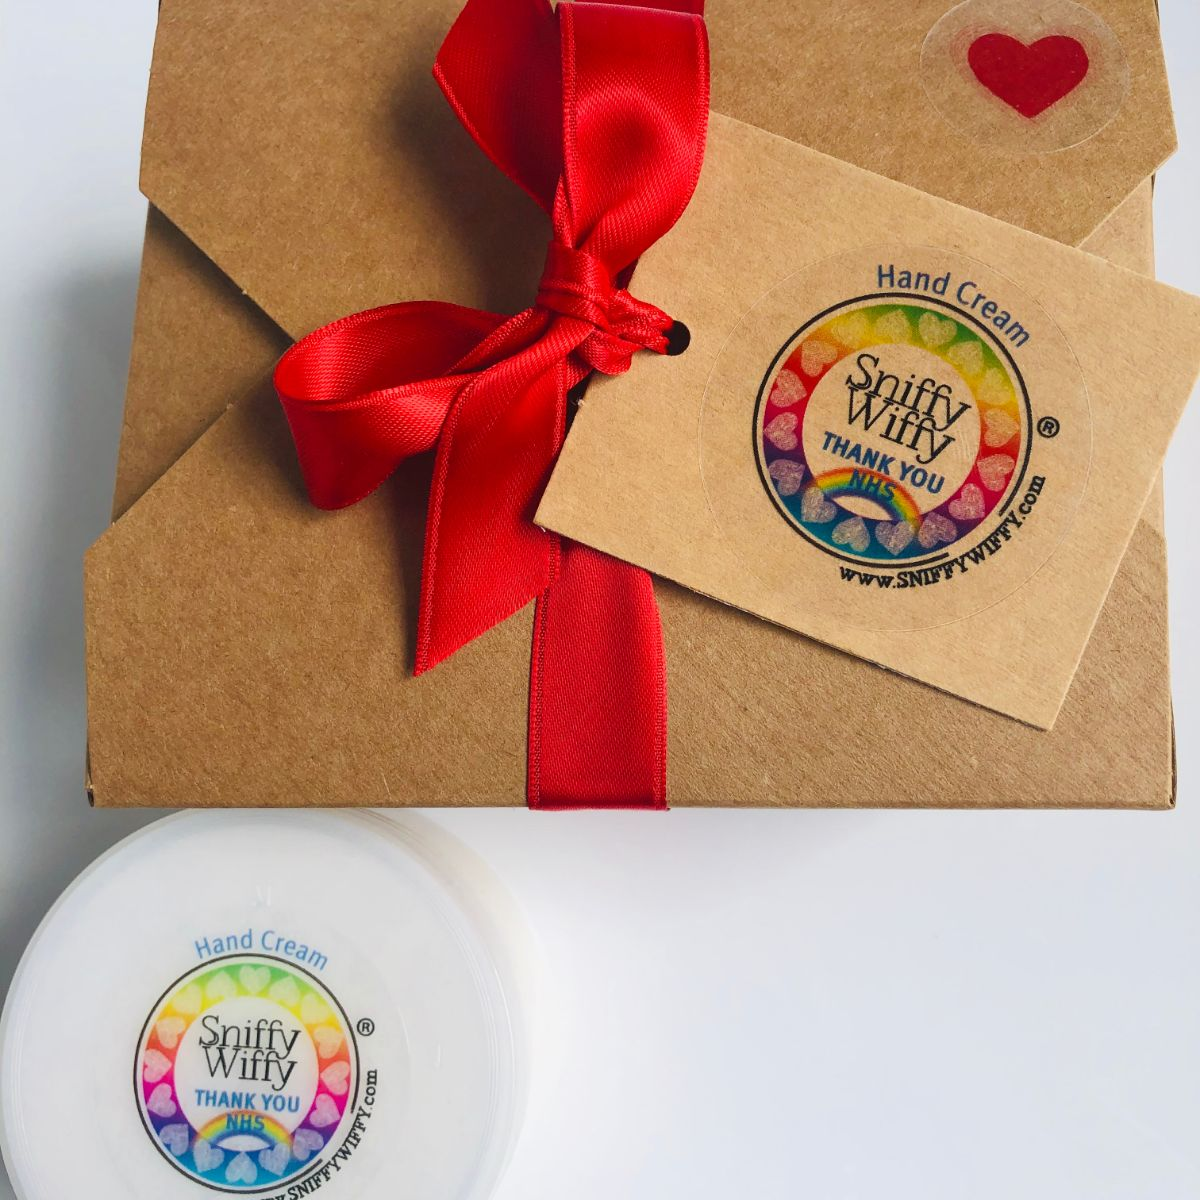 gift boxed handcream